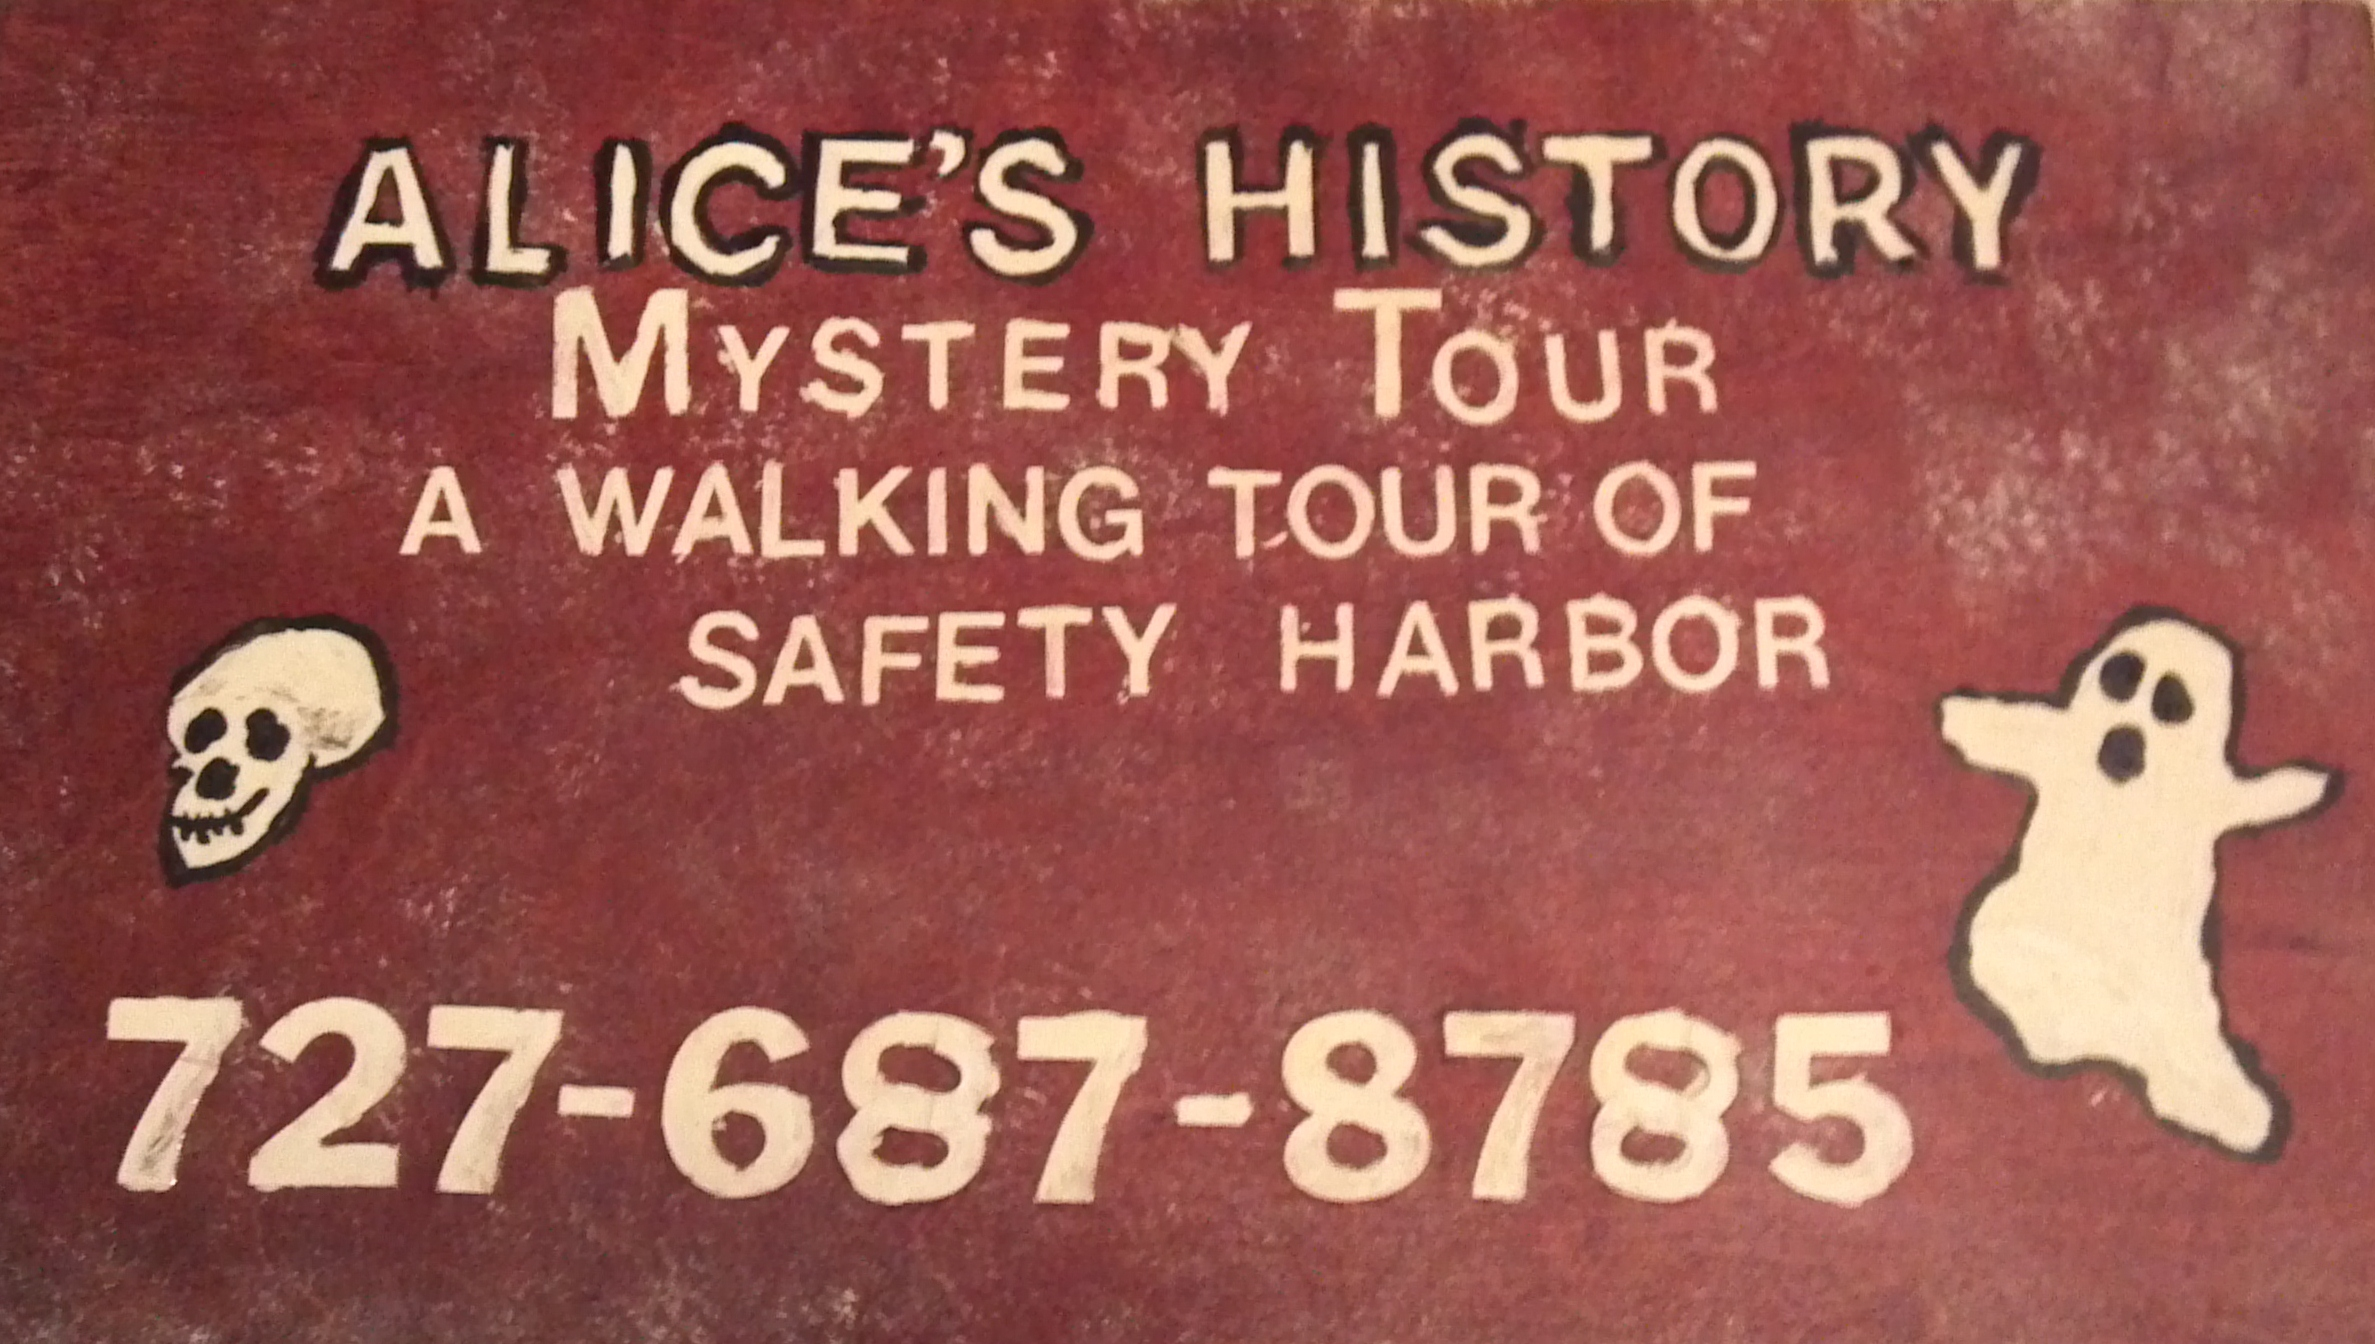 Safety Harbor Walking Tour